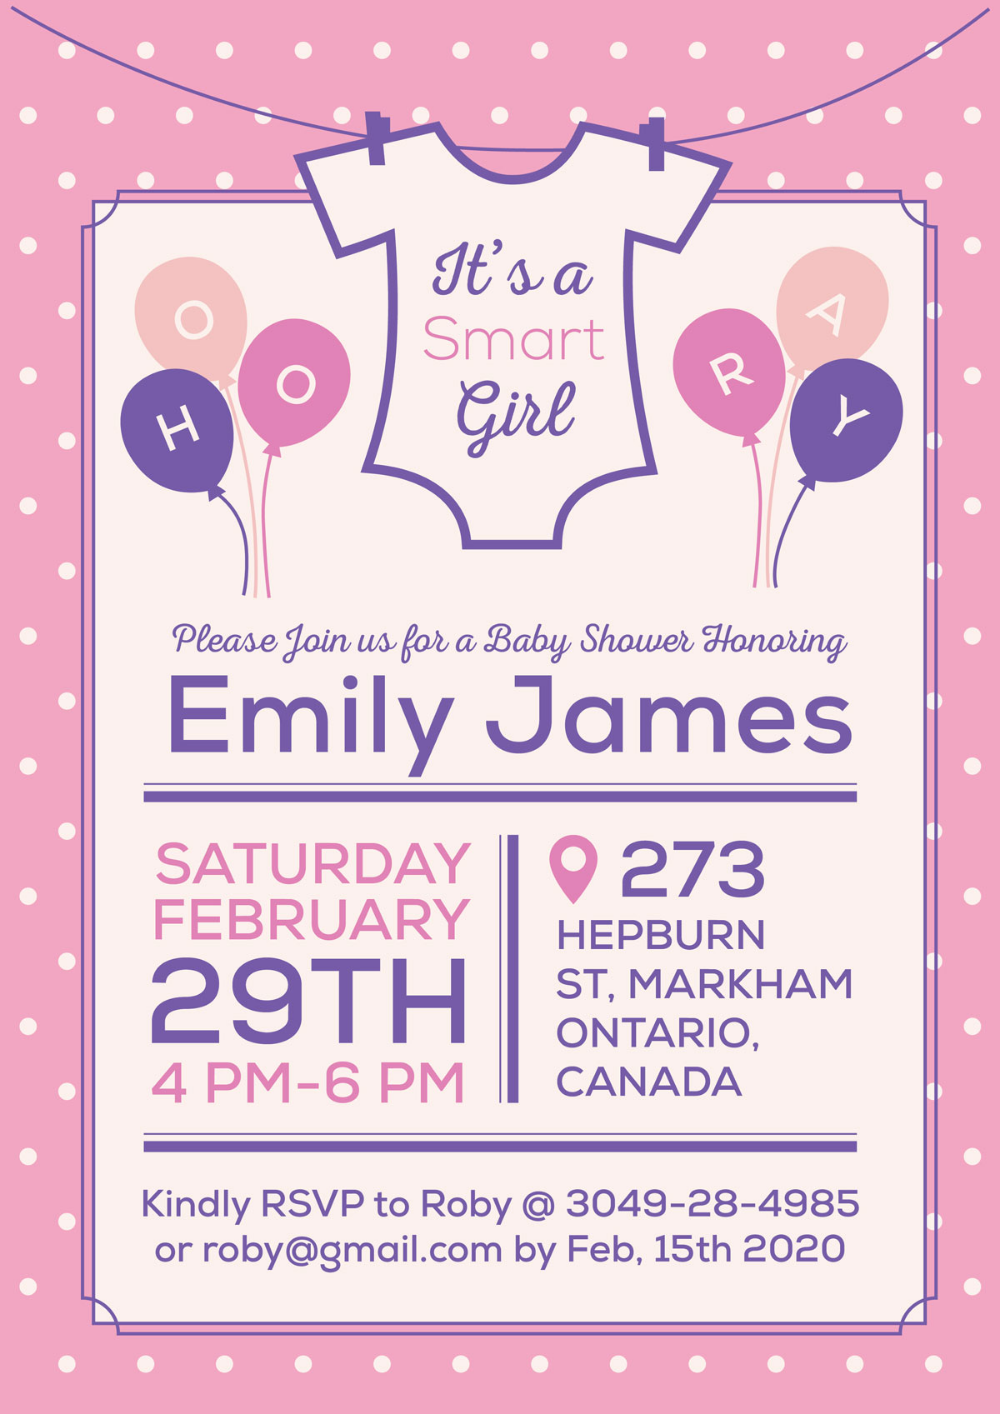 It S A Baby Girl Free Shower Invitation Card Design Template Ai In 2020 Invitation Card Design Baby Invitations Invitation Design Template